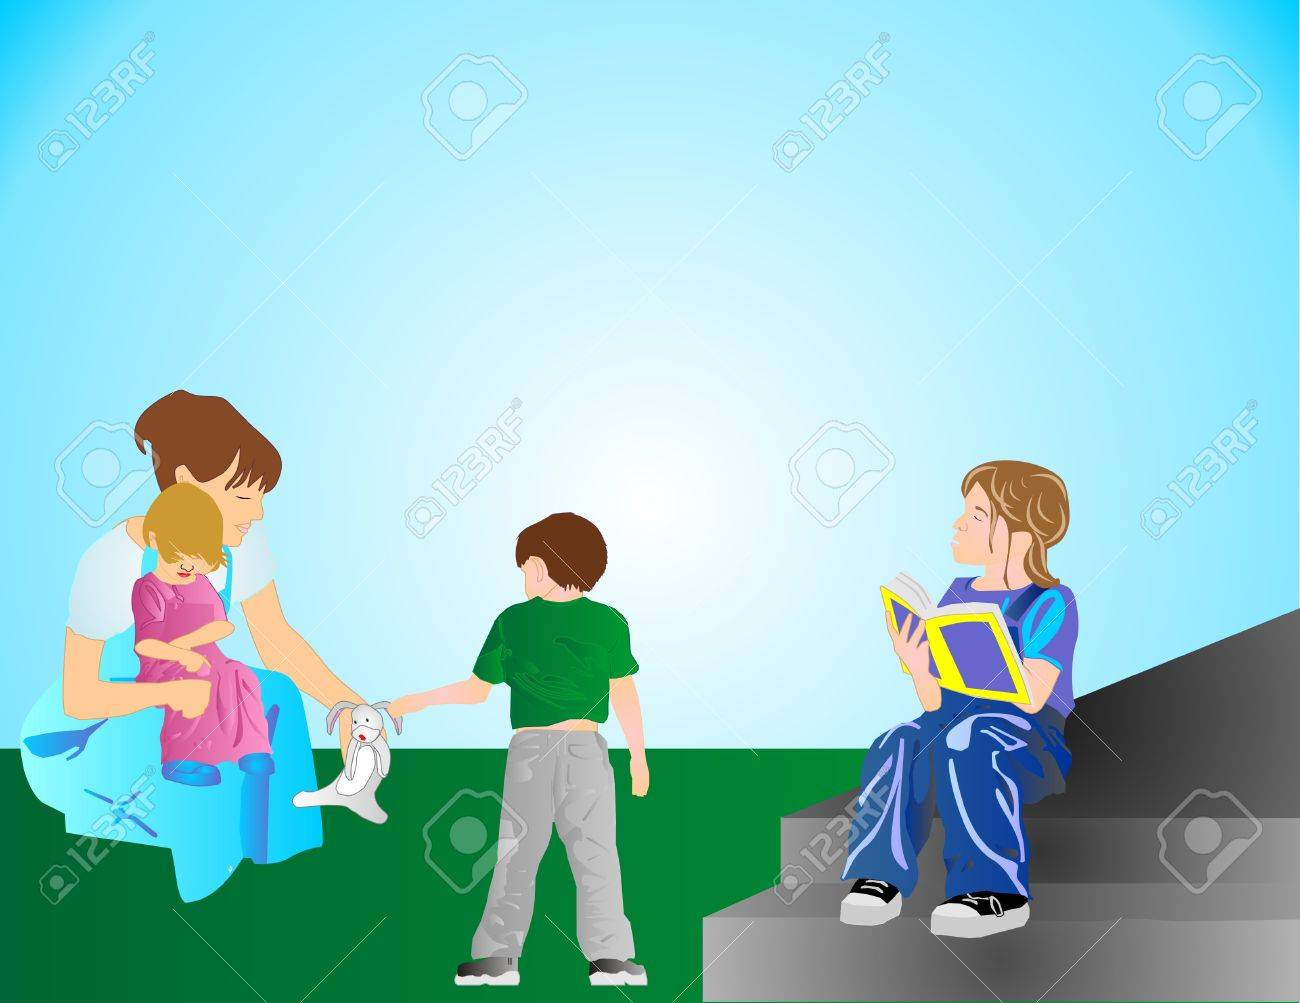 Mom is holding youngest girl and picking up Bunny for her son.  As the eldest daughter is sitting on steps reading her book. Stock Vector - 6969769